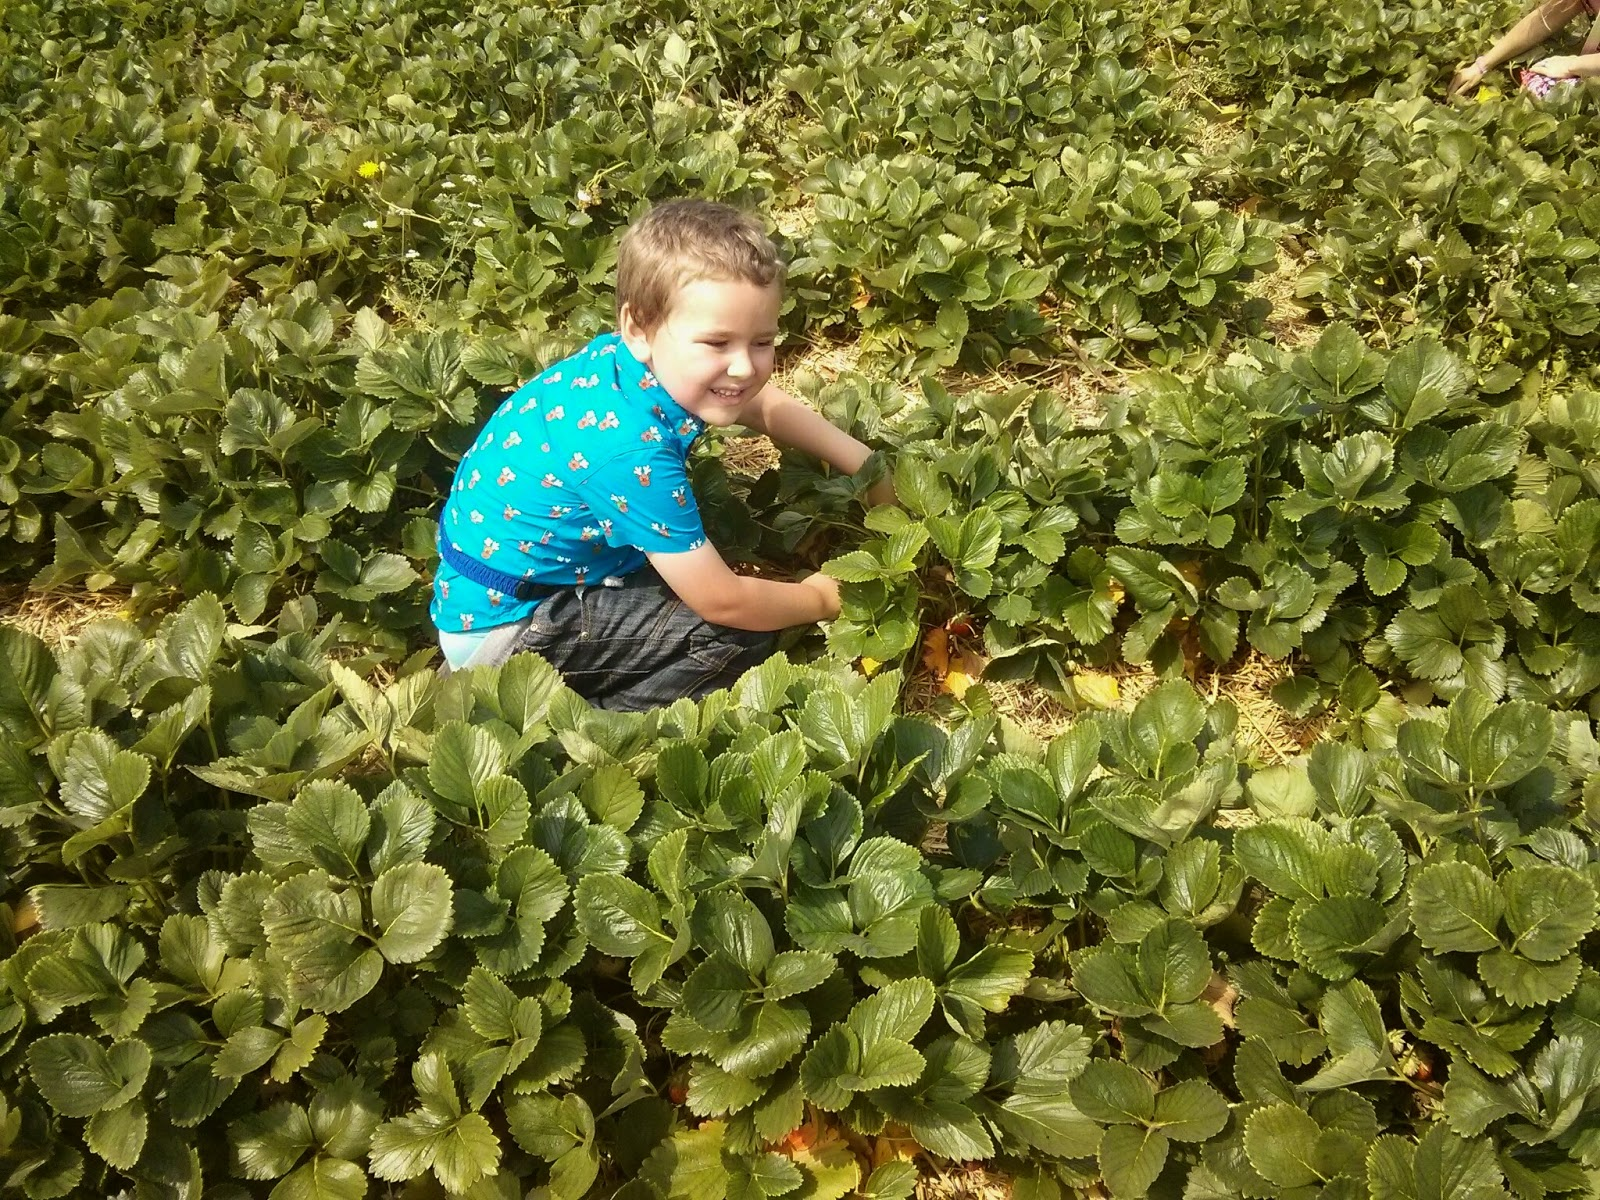 Big Boy picking Strawberries